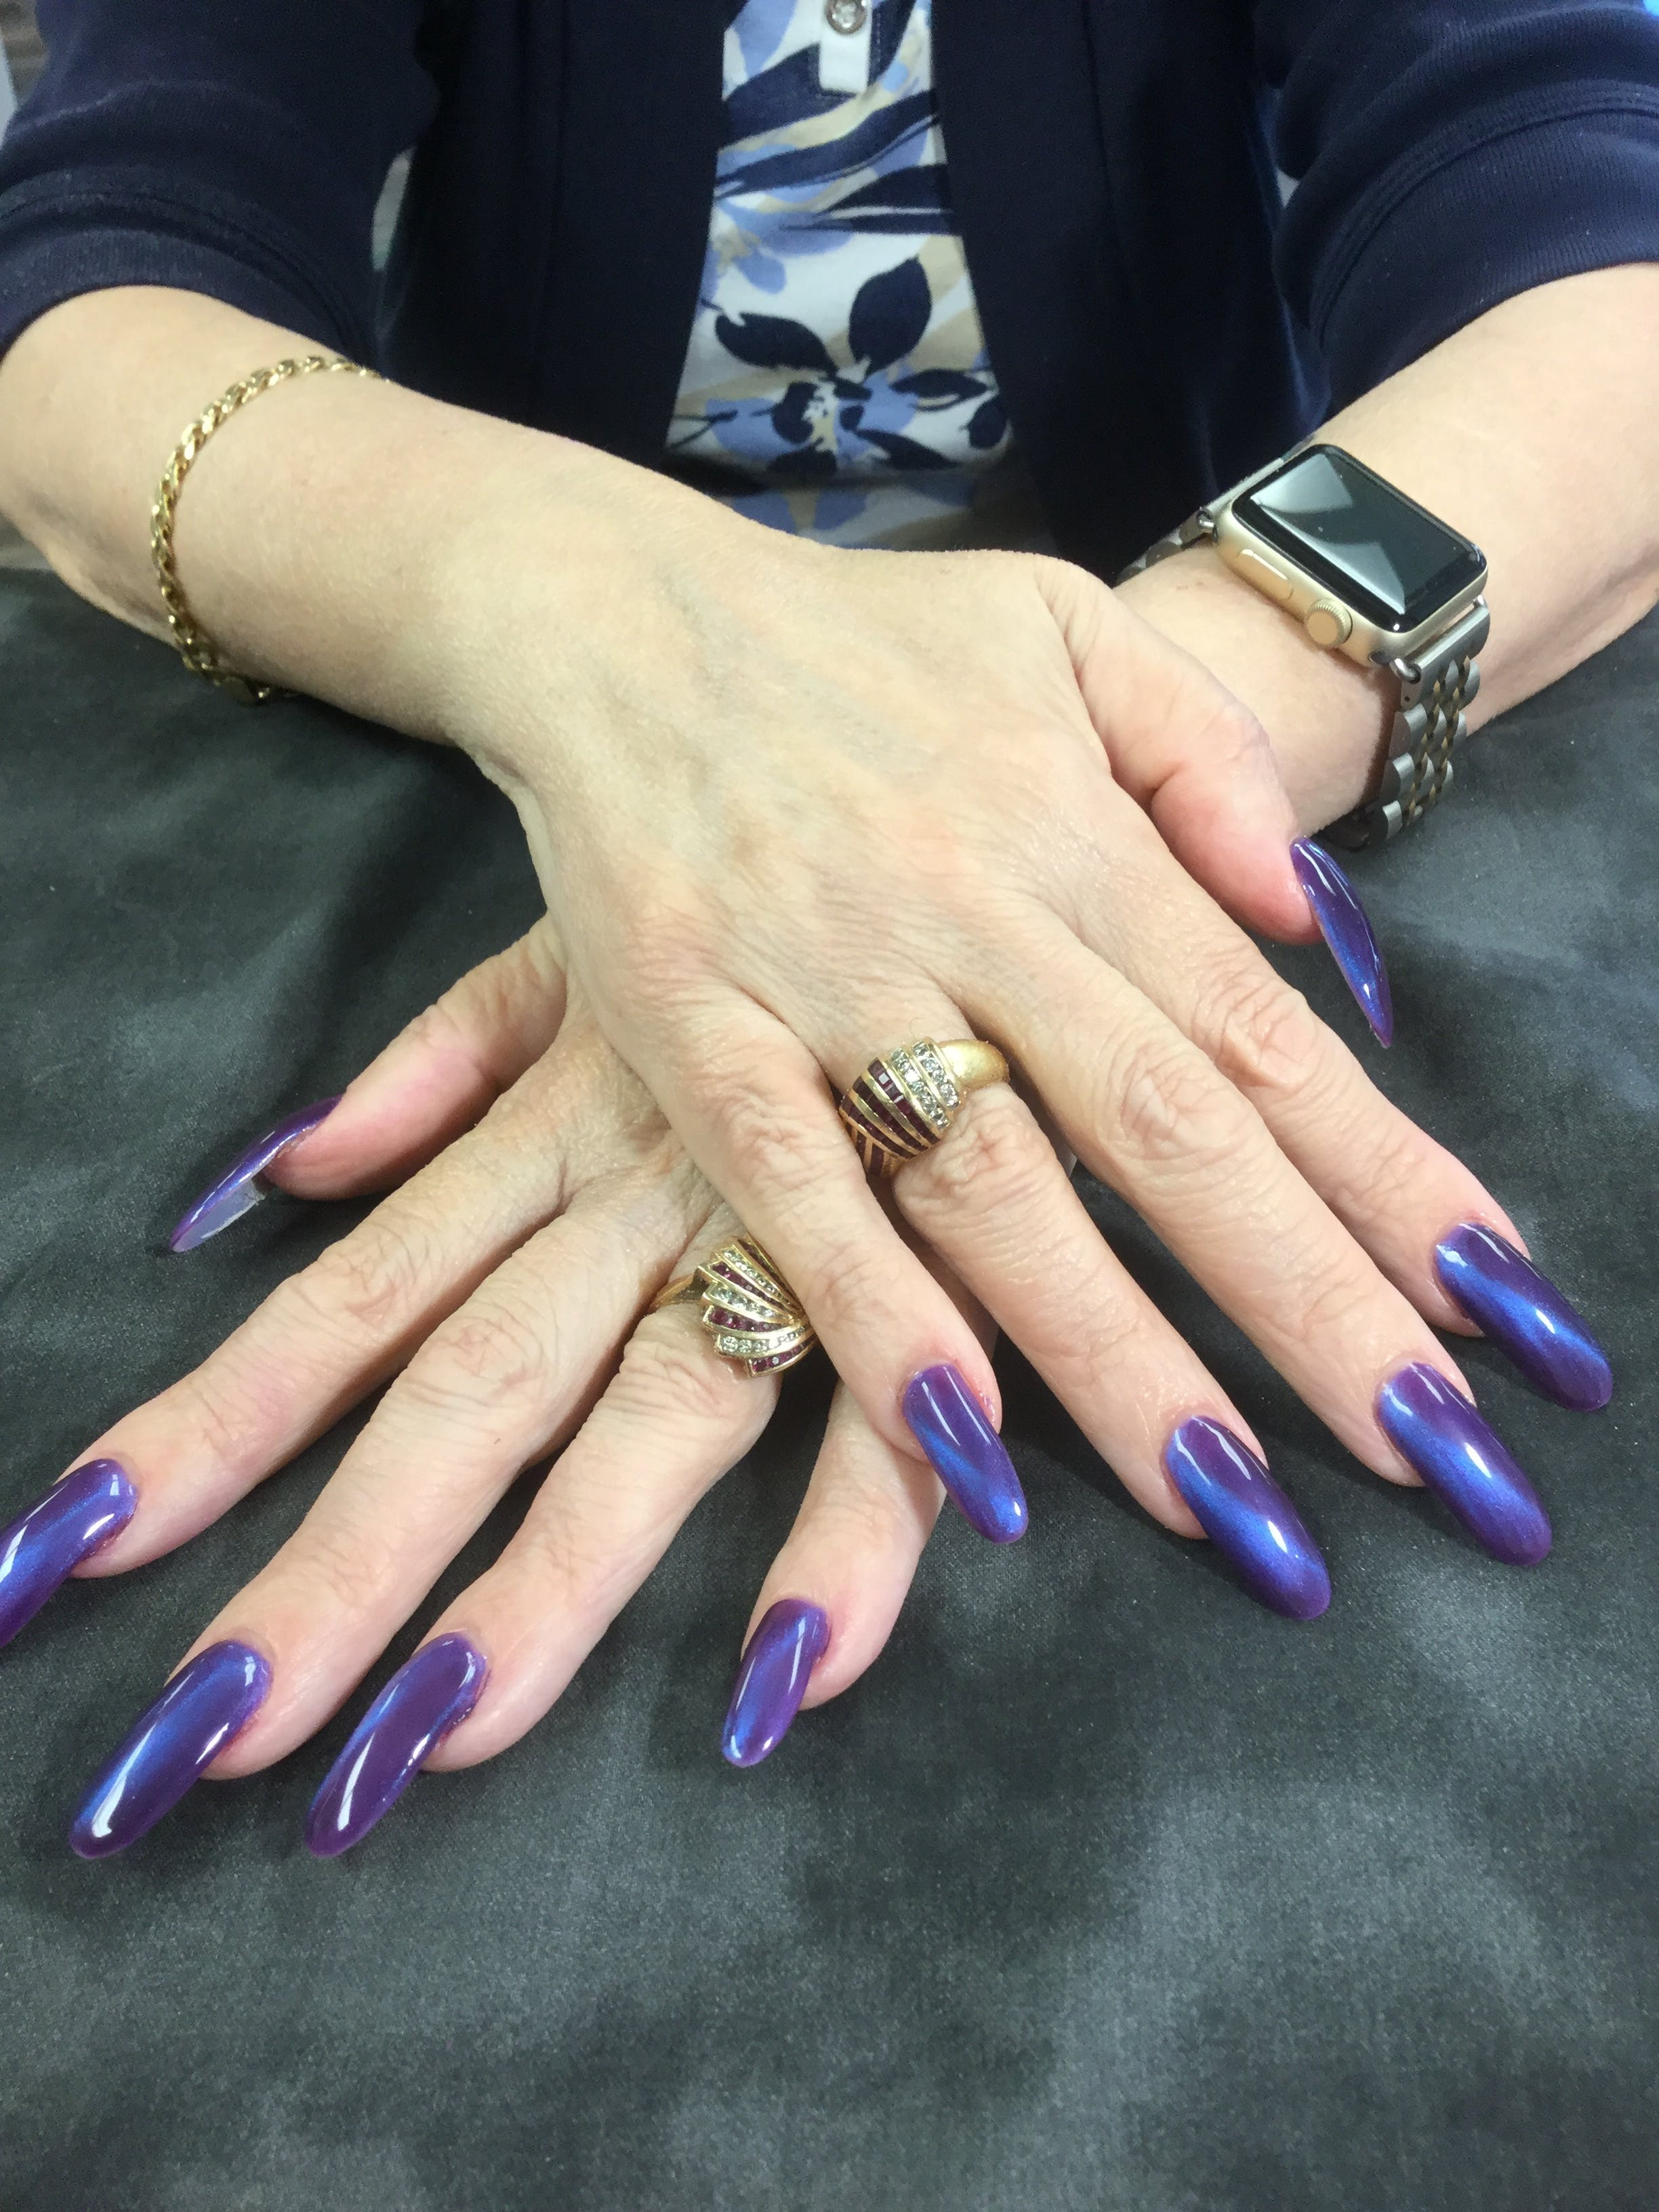 Free stock photo of Tiger eye nails in purple